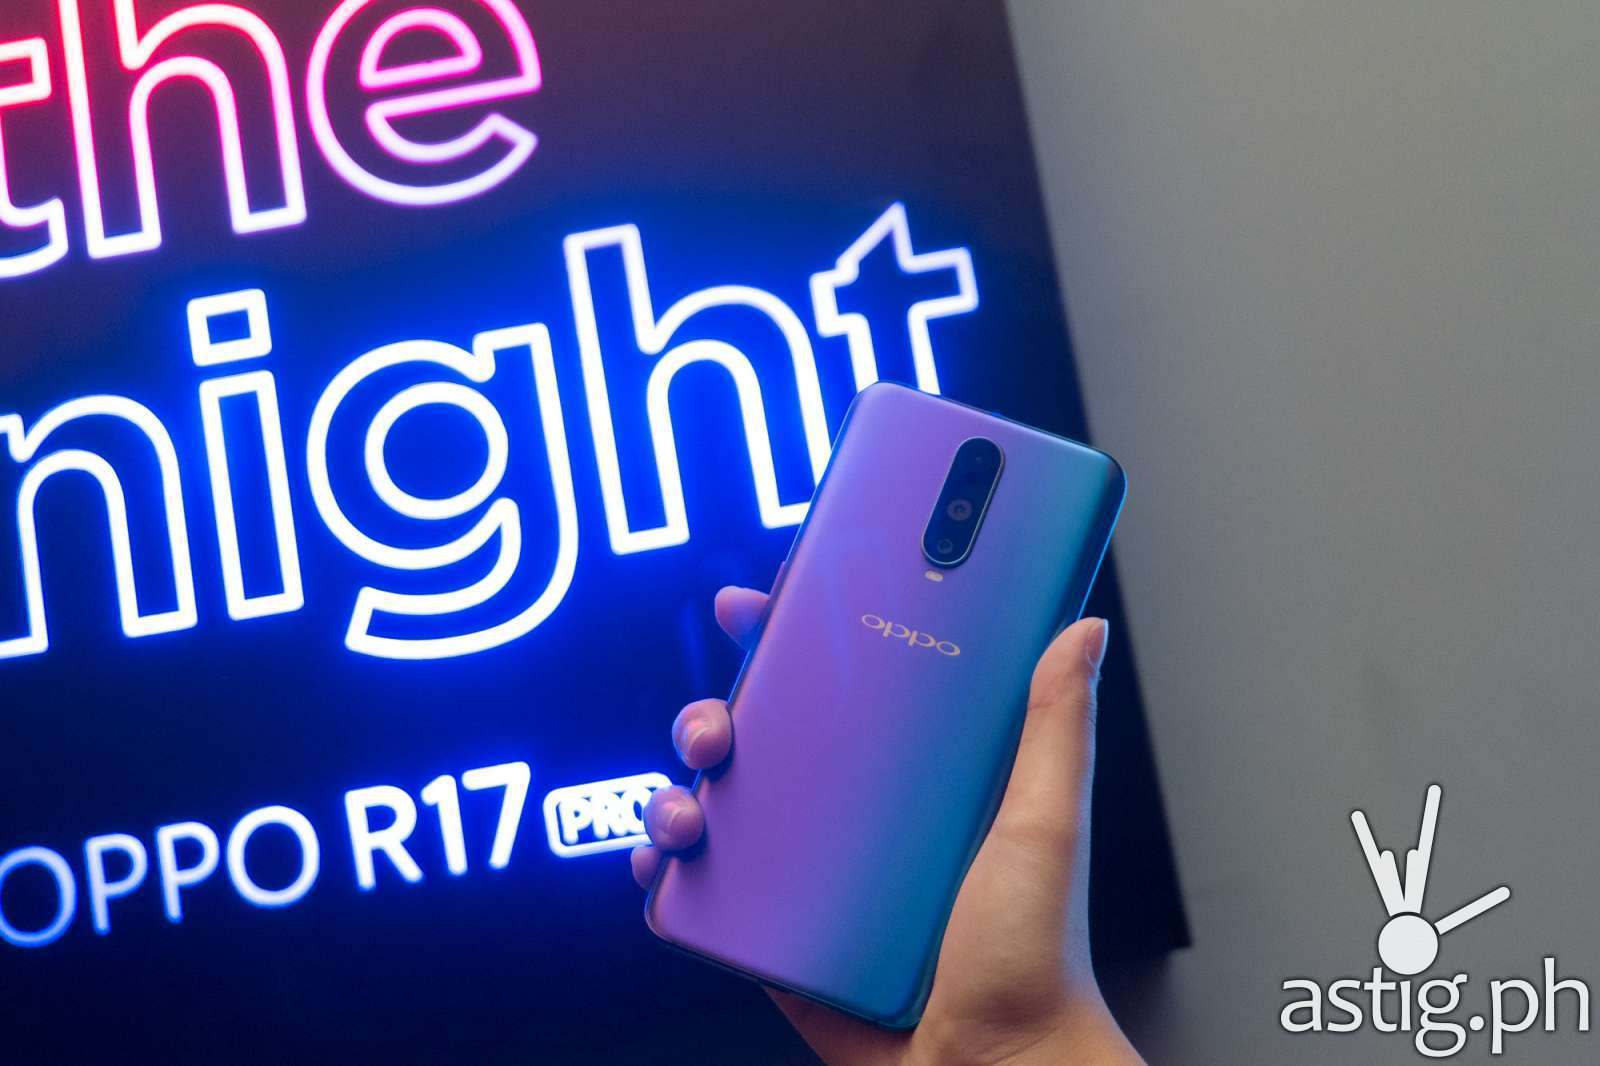 OPPO R17 Pro Seize The Night